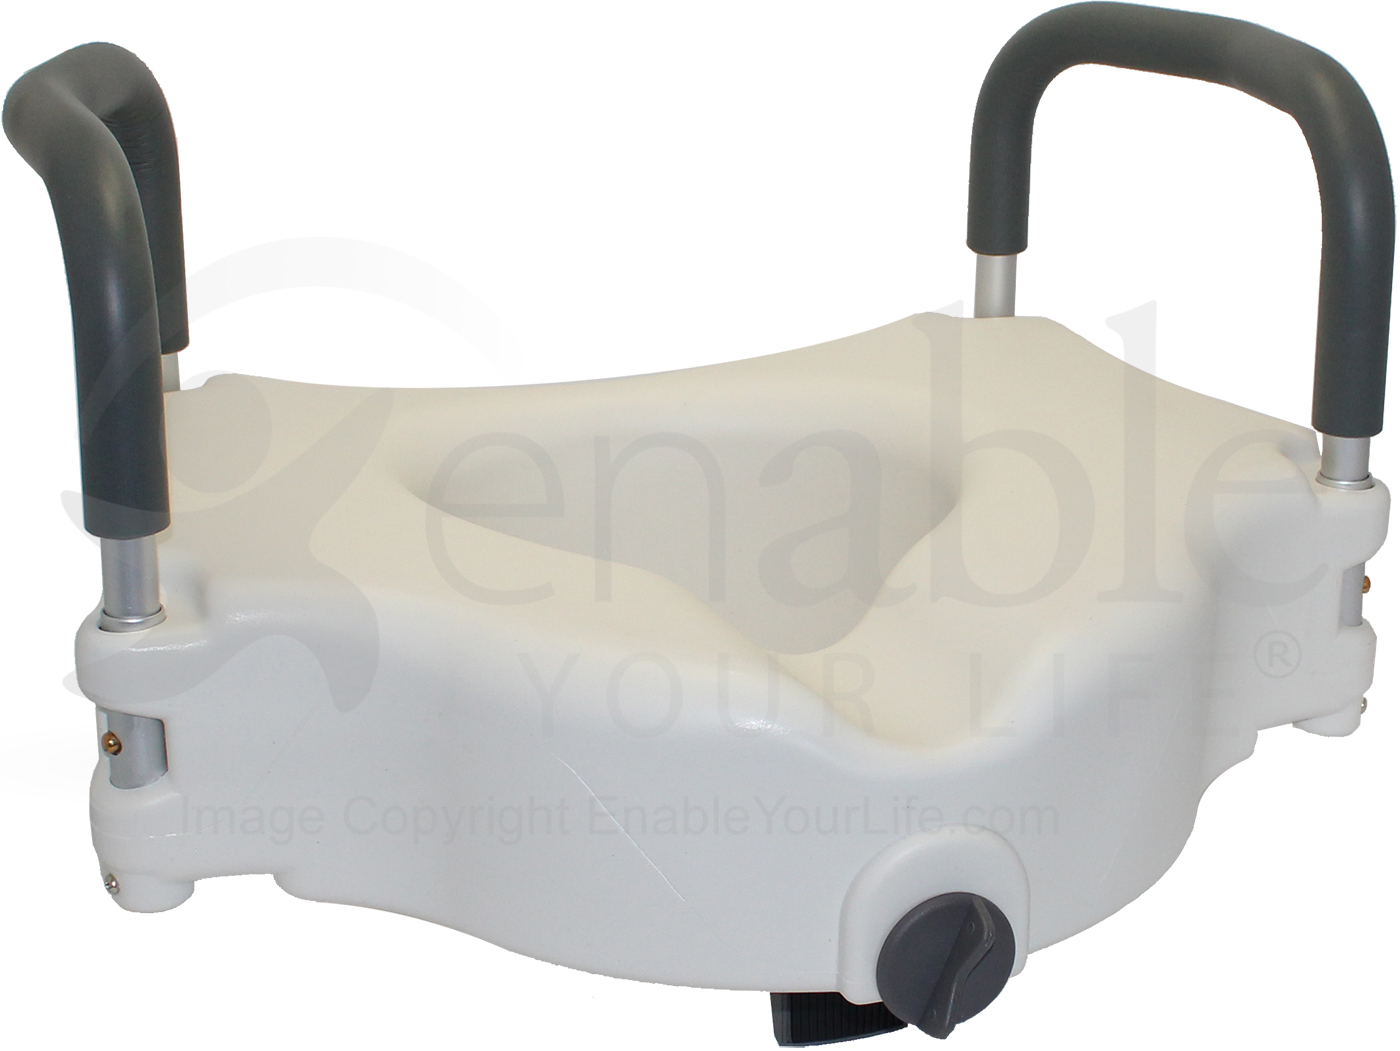 Invacare Probasics 174 Clamp On Raised Toilet Seat With Arms